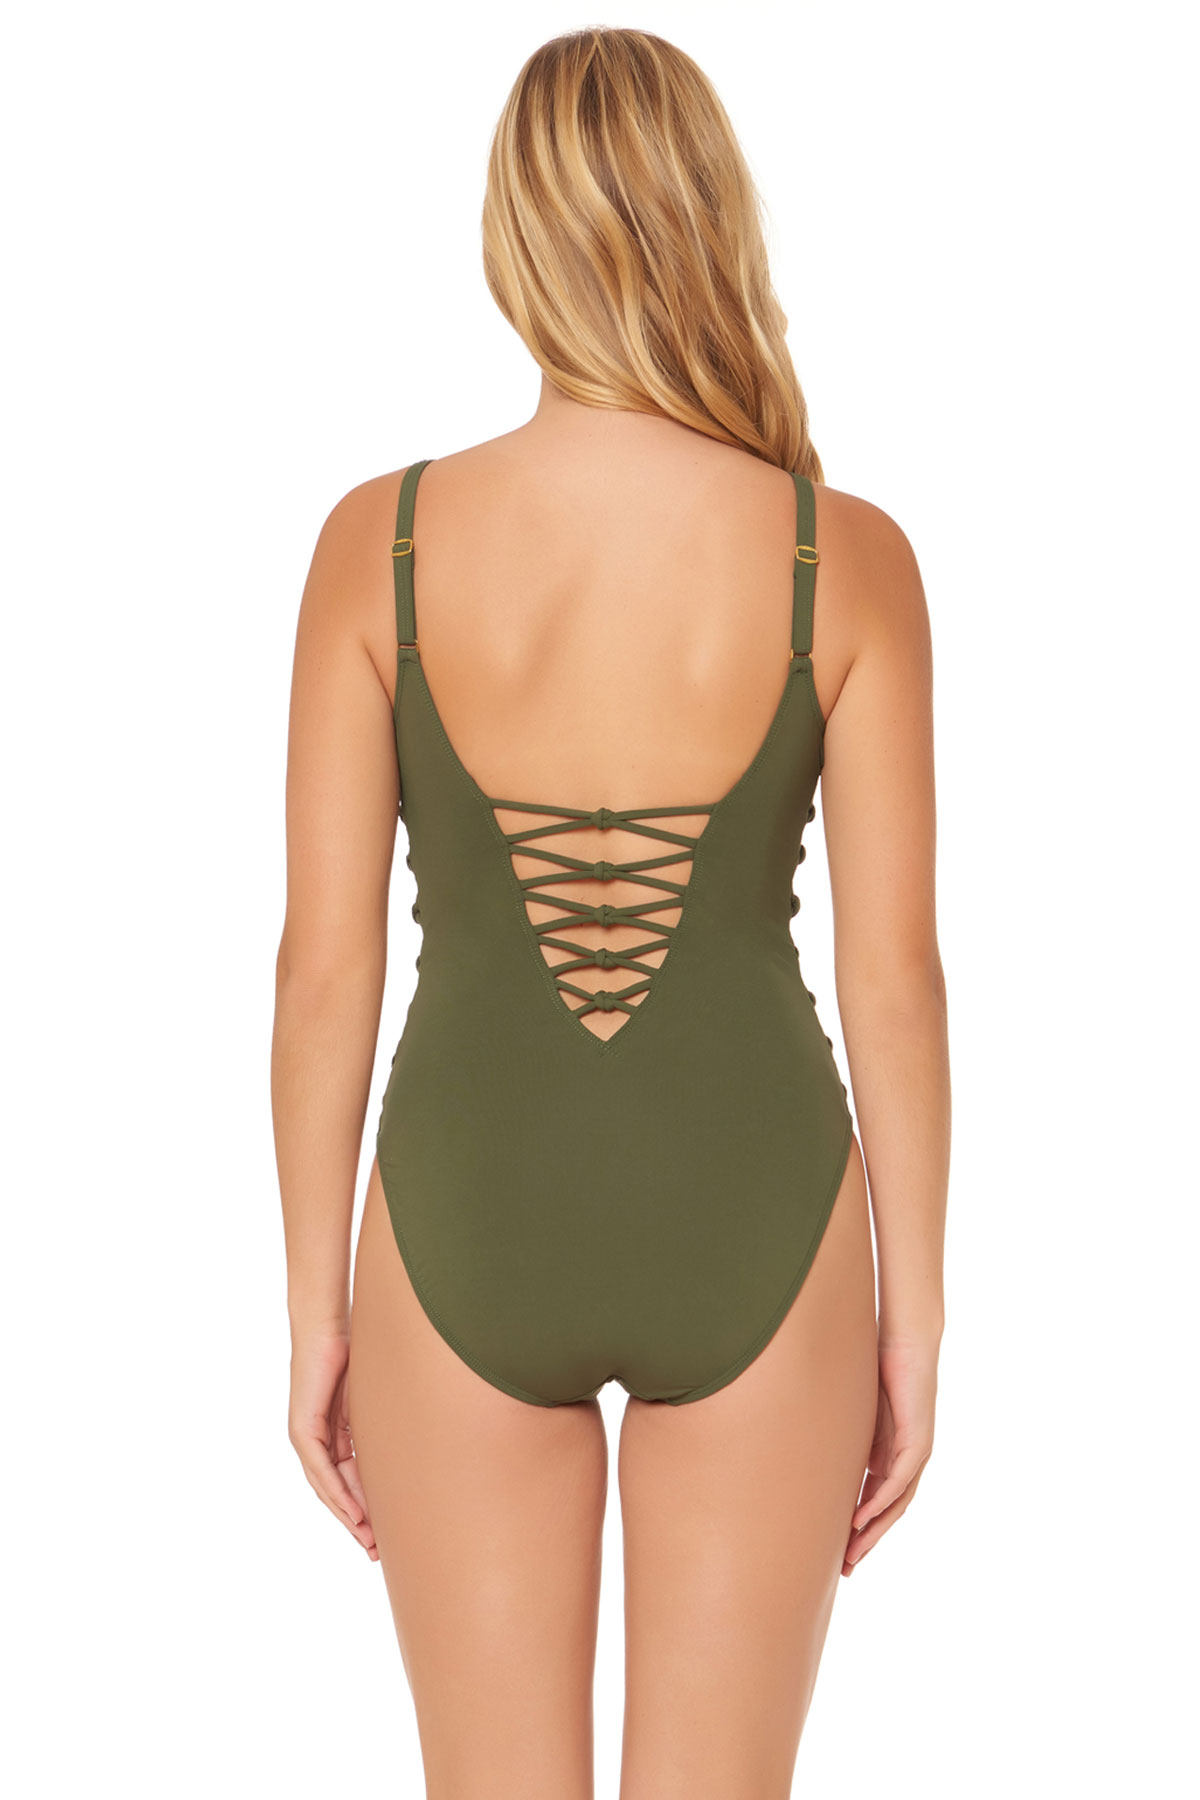 Side Lace-Up Over The Shoulder One Piece Swimsuit - Amazon 2